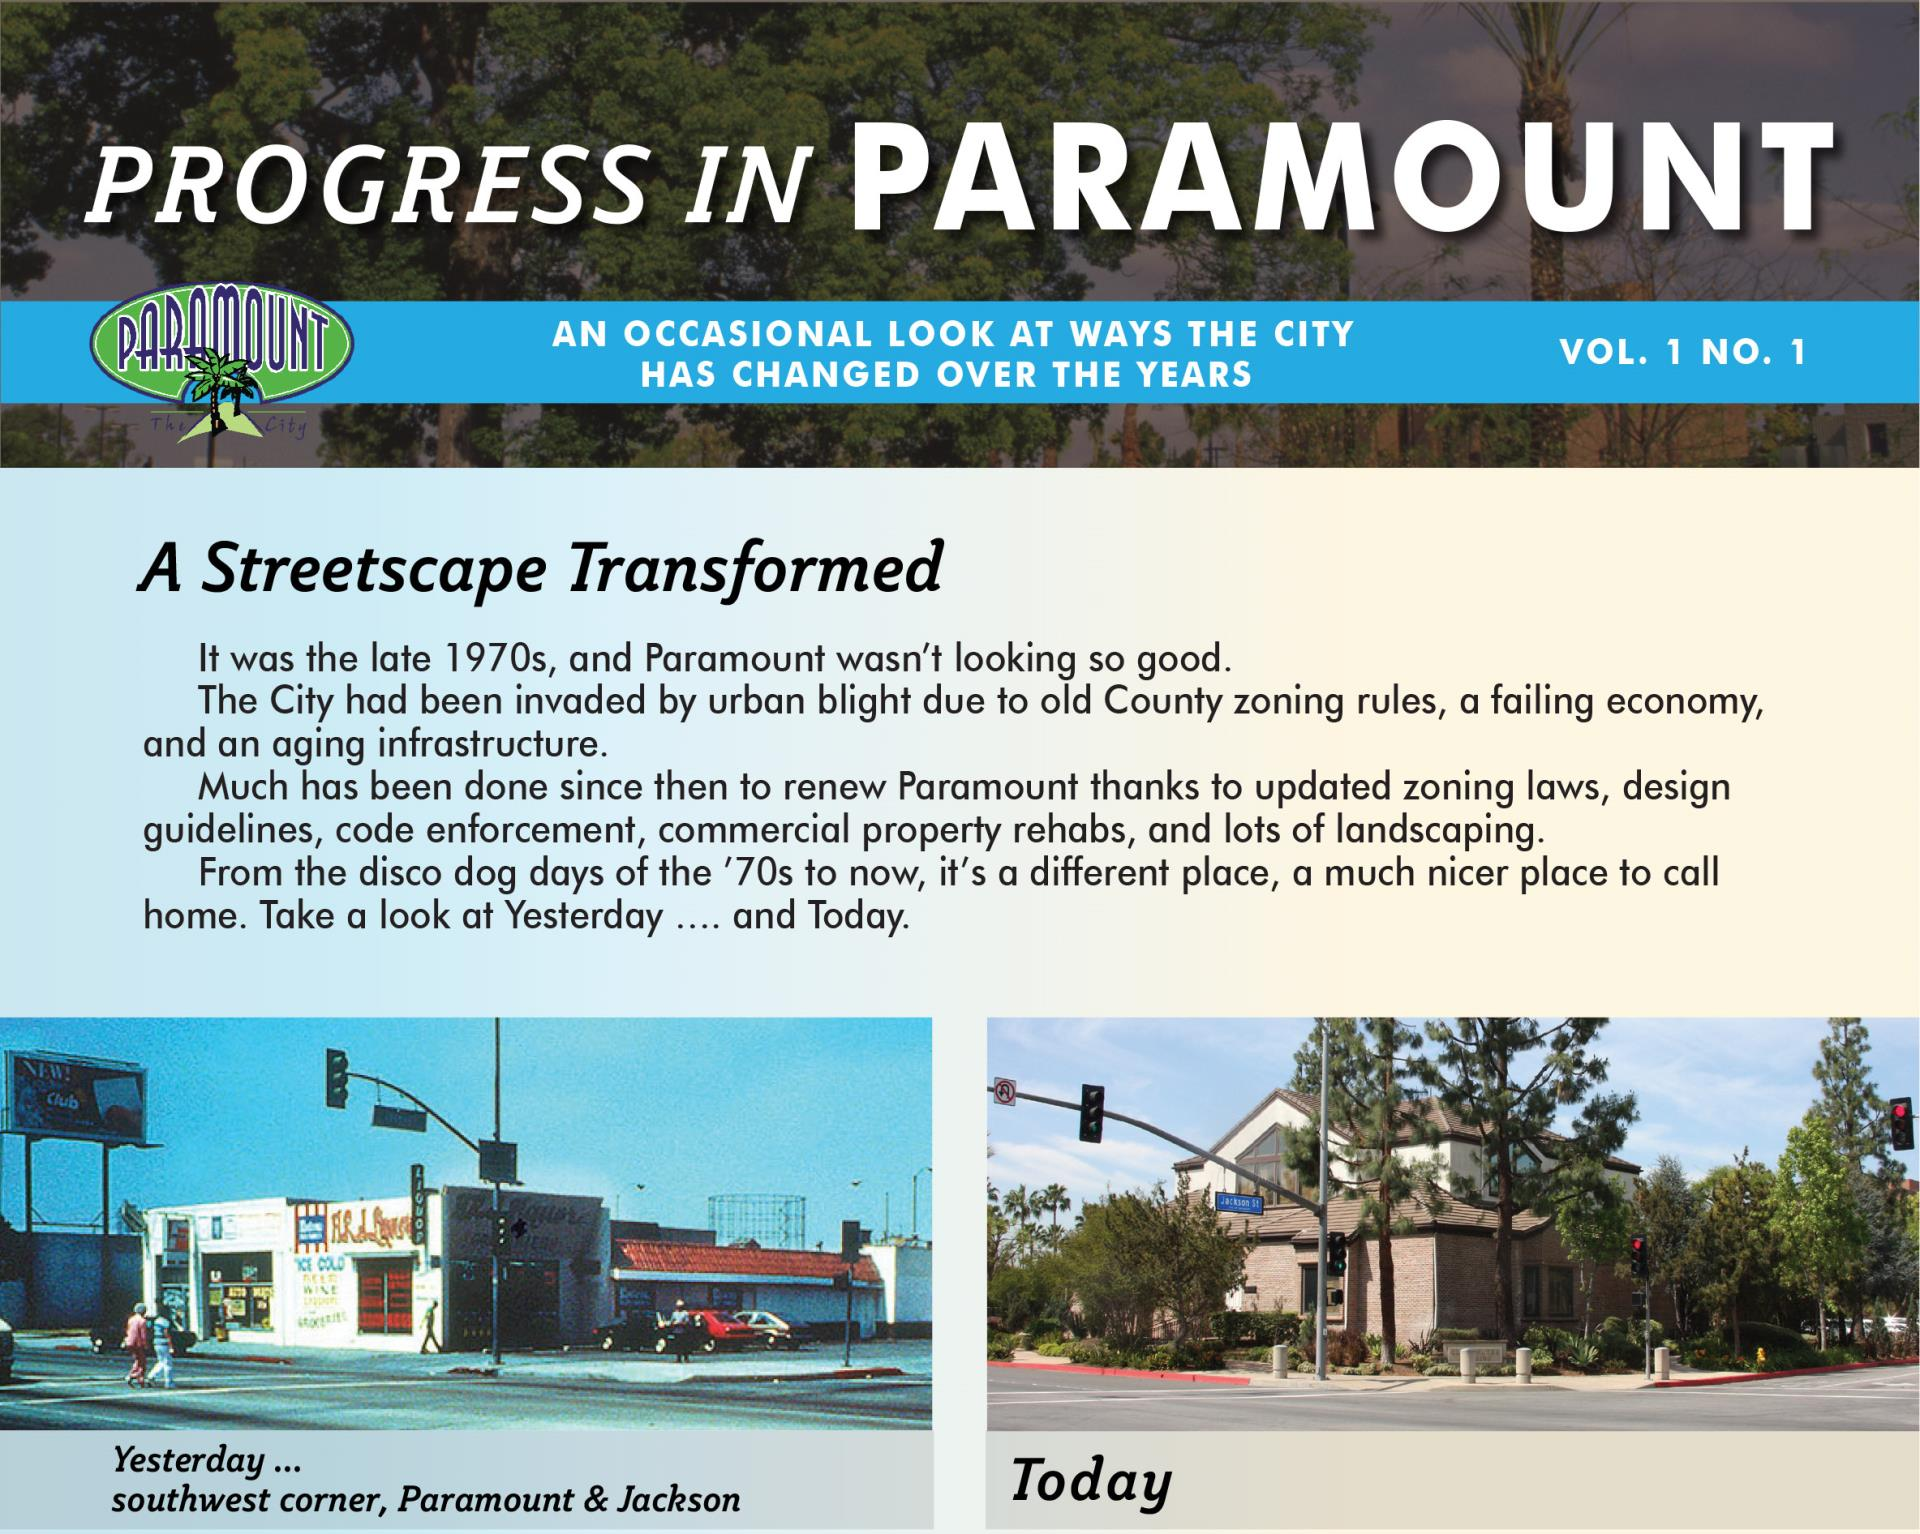 Progress in Paramount